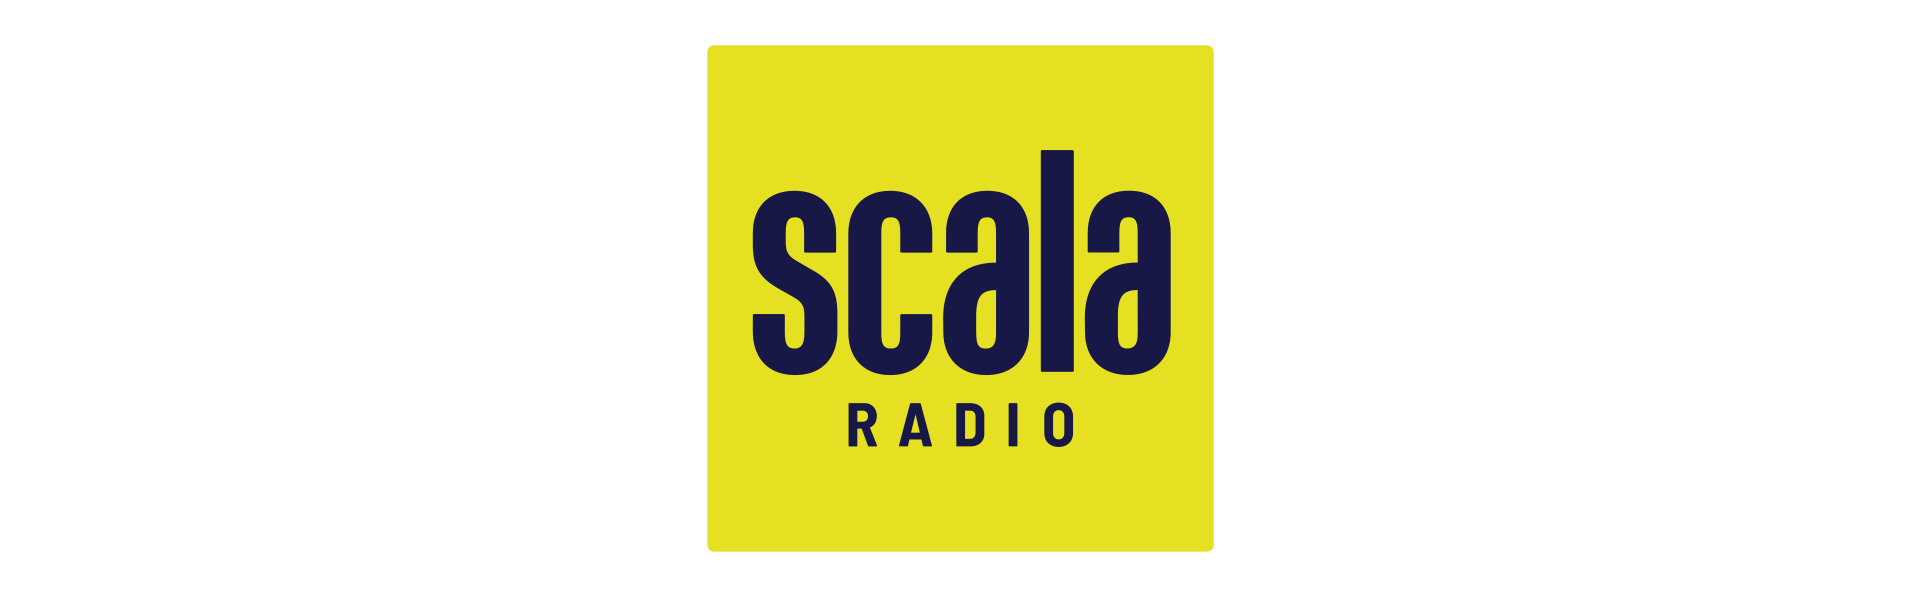 The Levelling Soundtrack on Scala Radio